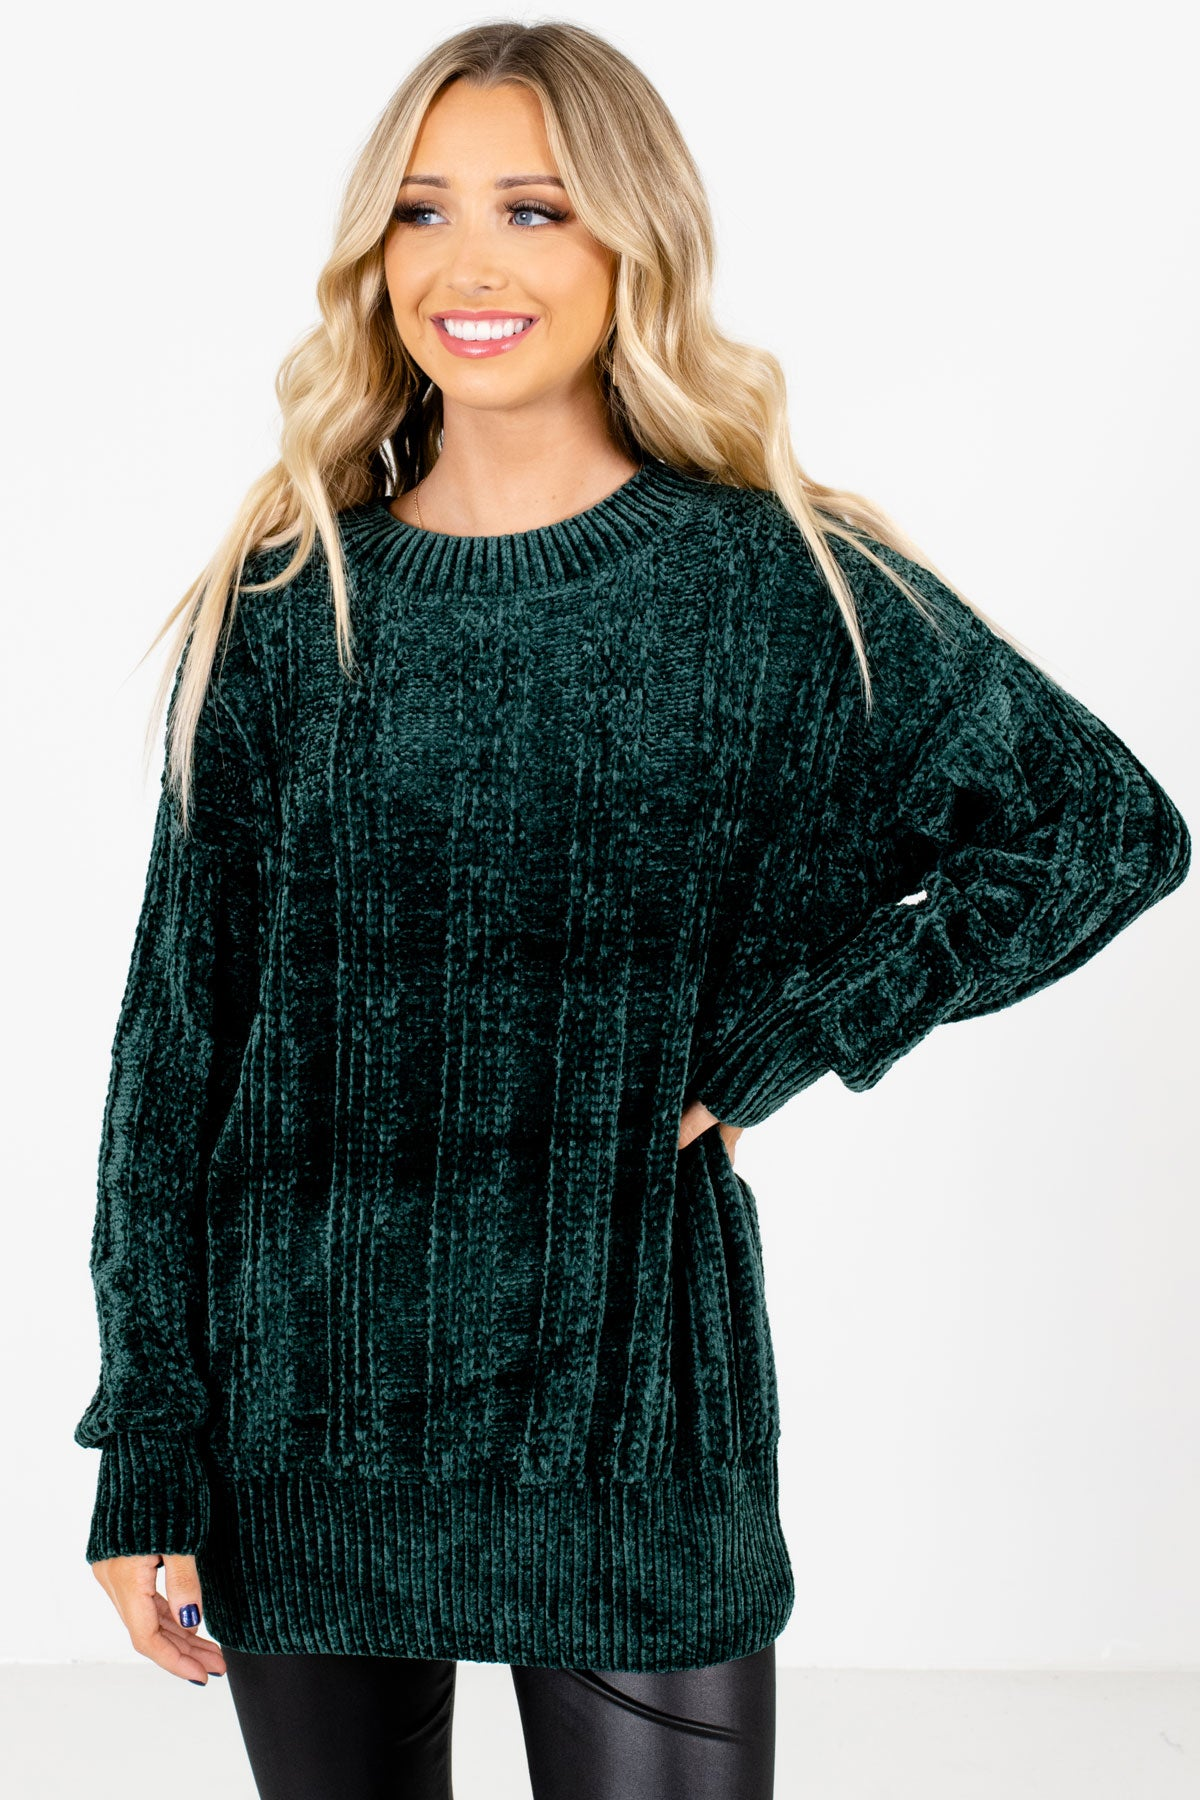 Green High-Quality Knit Material Boutique Sweaters for Women